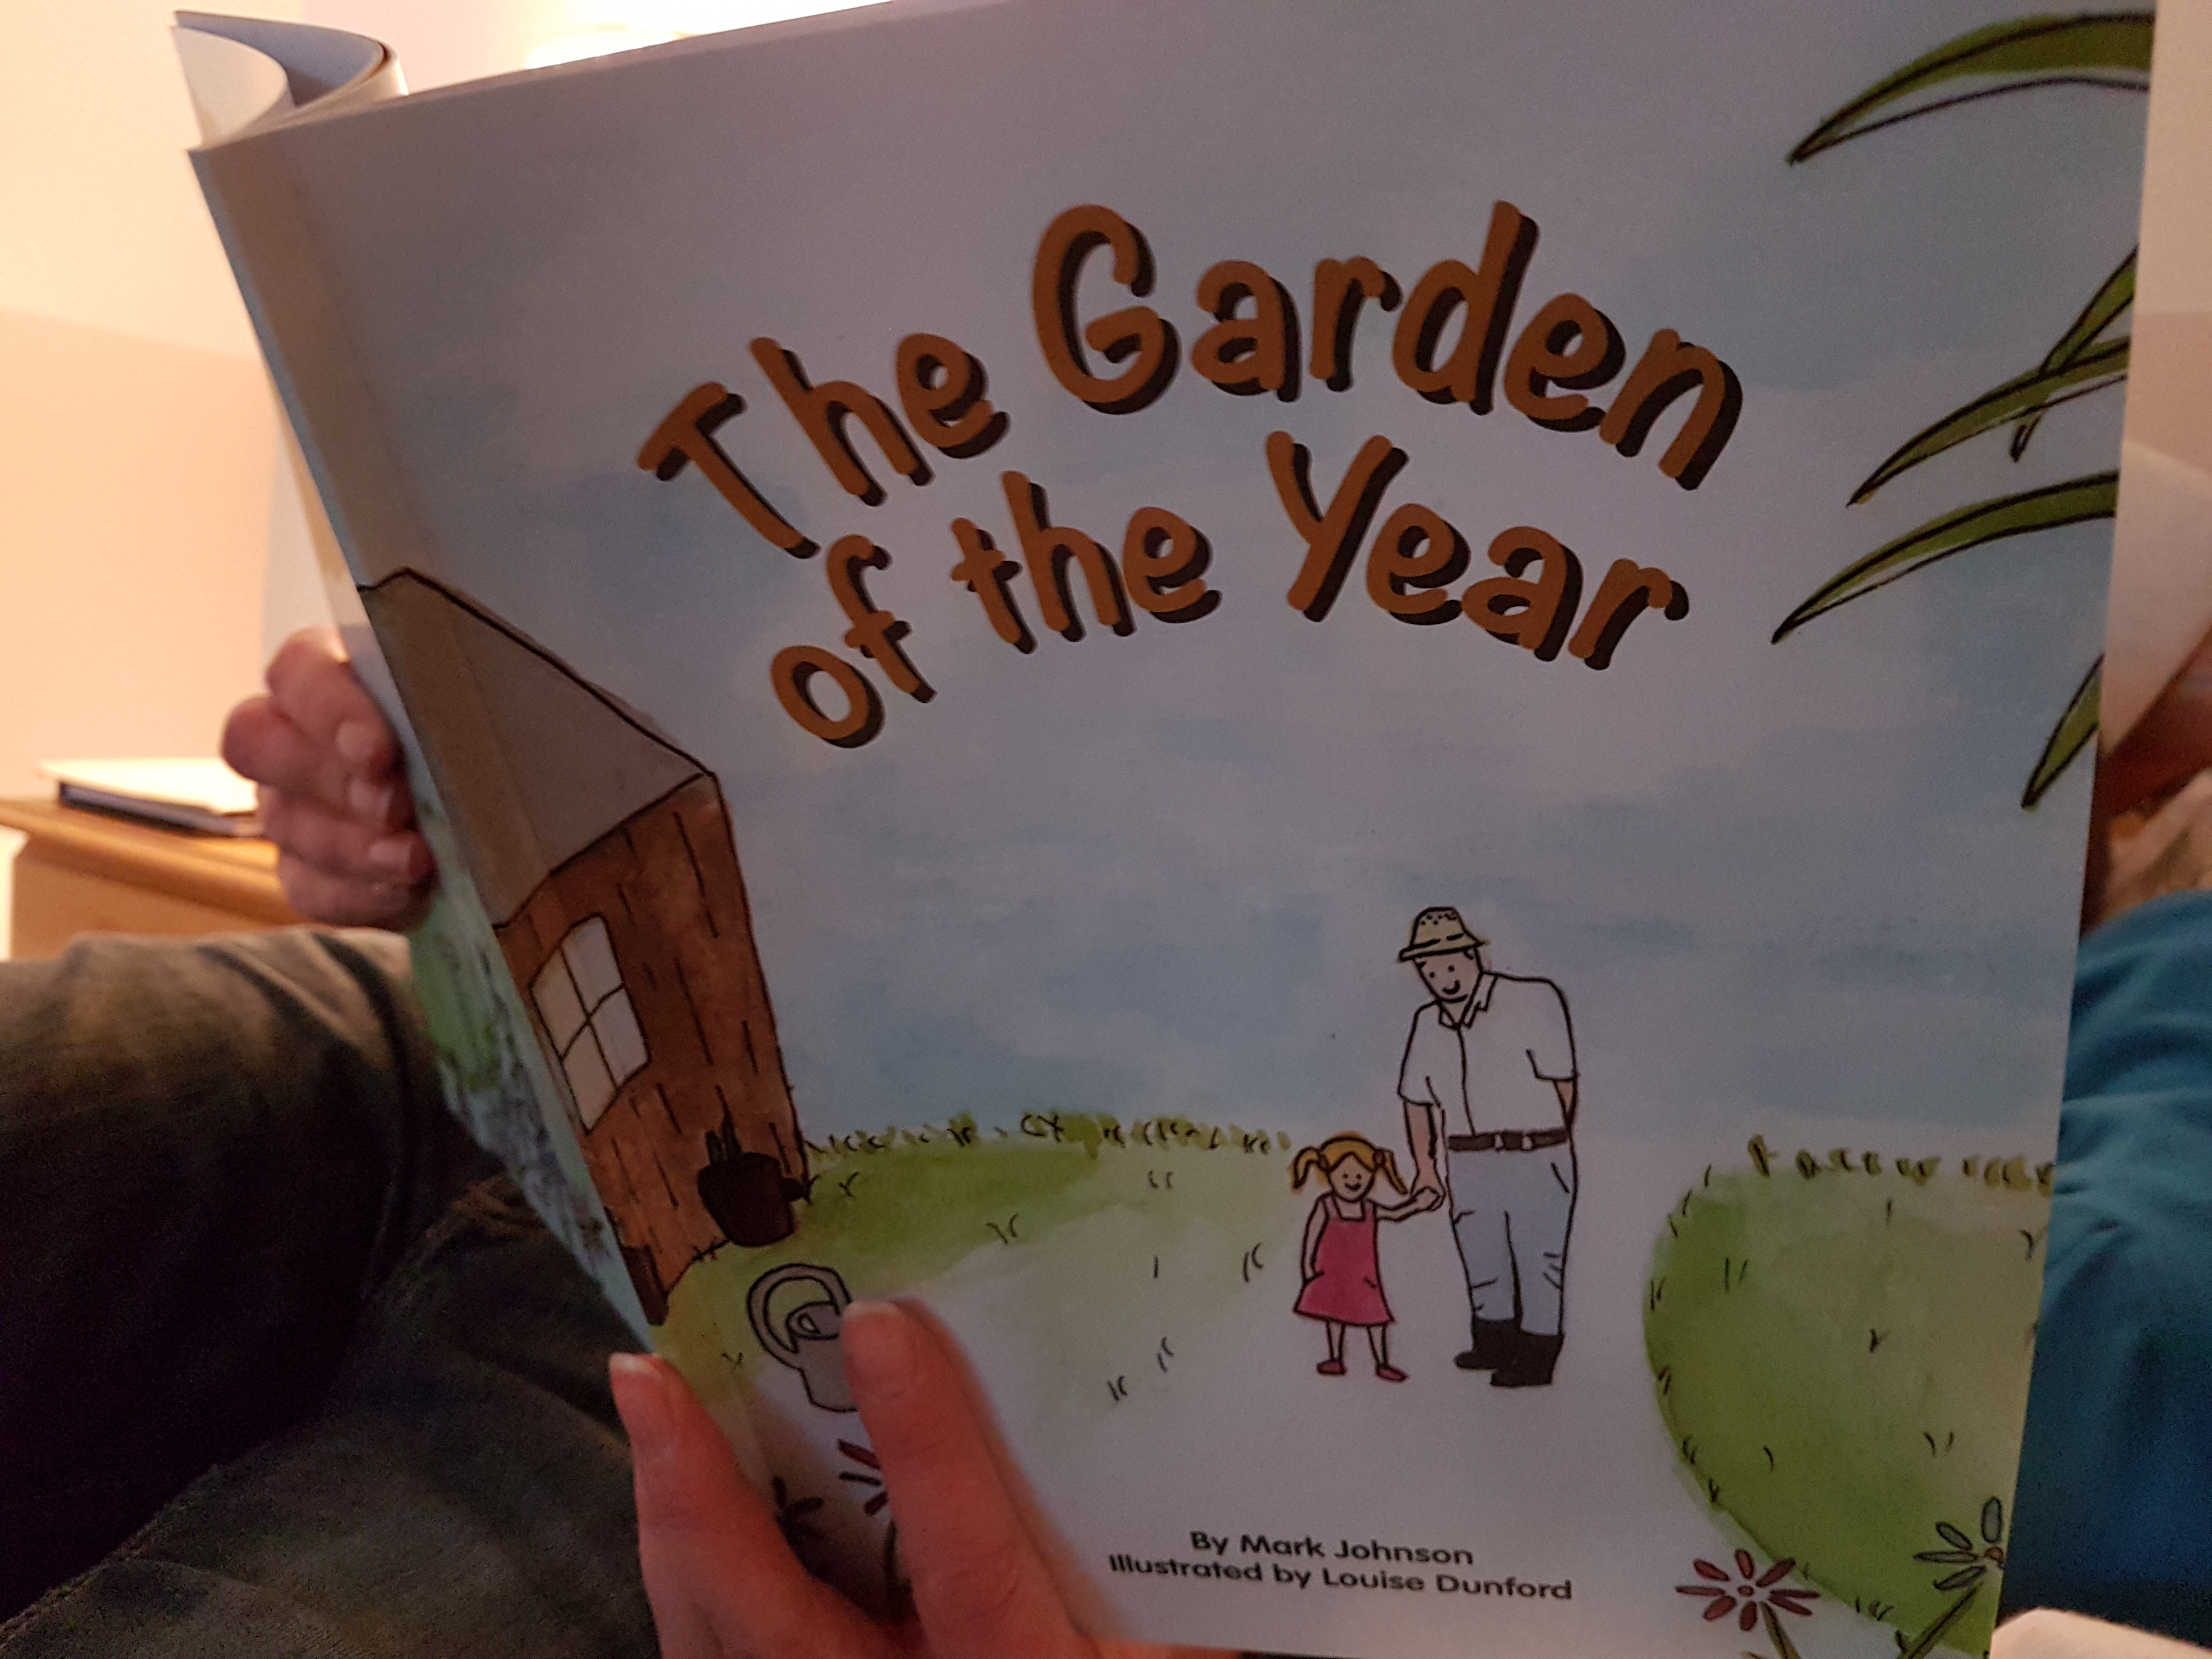 the garden of the year